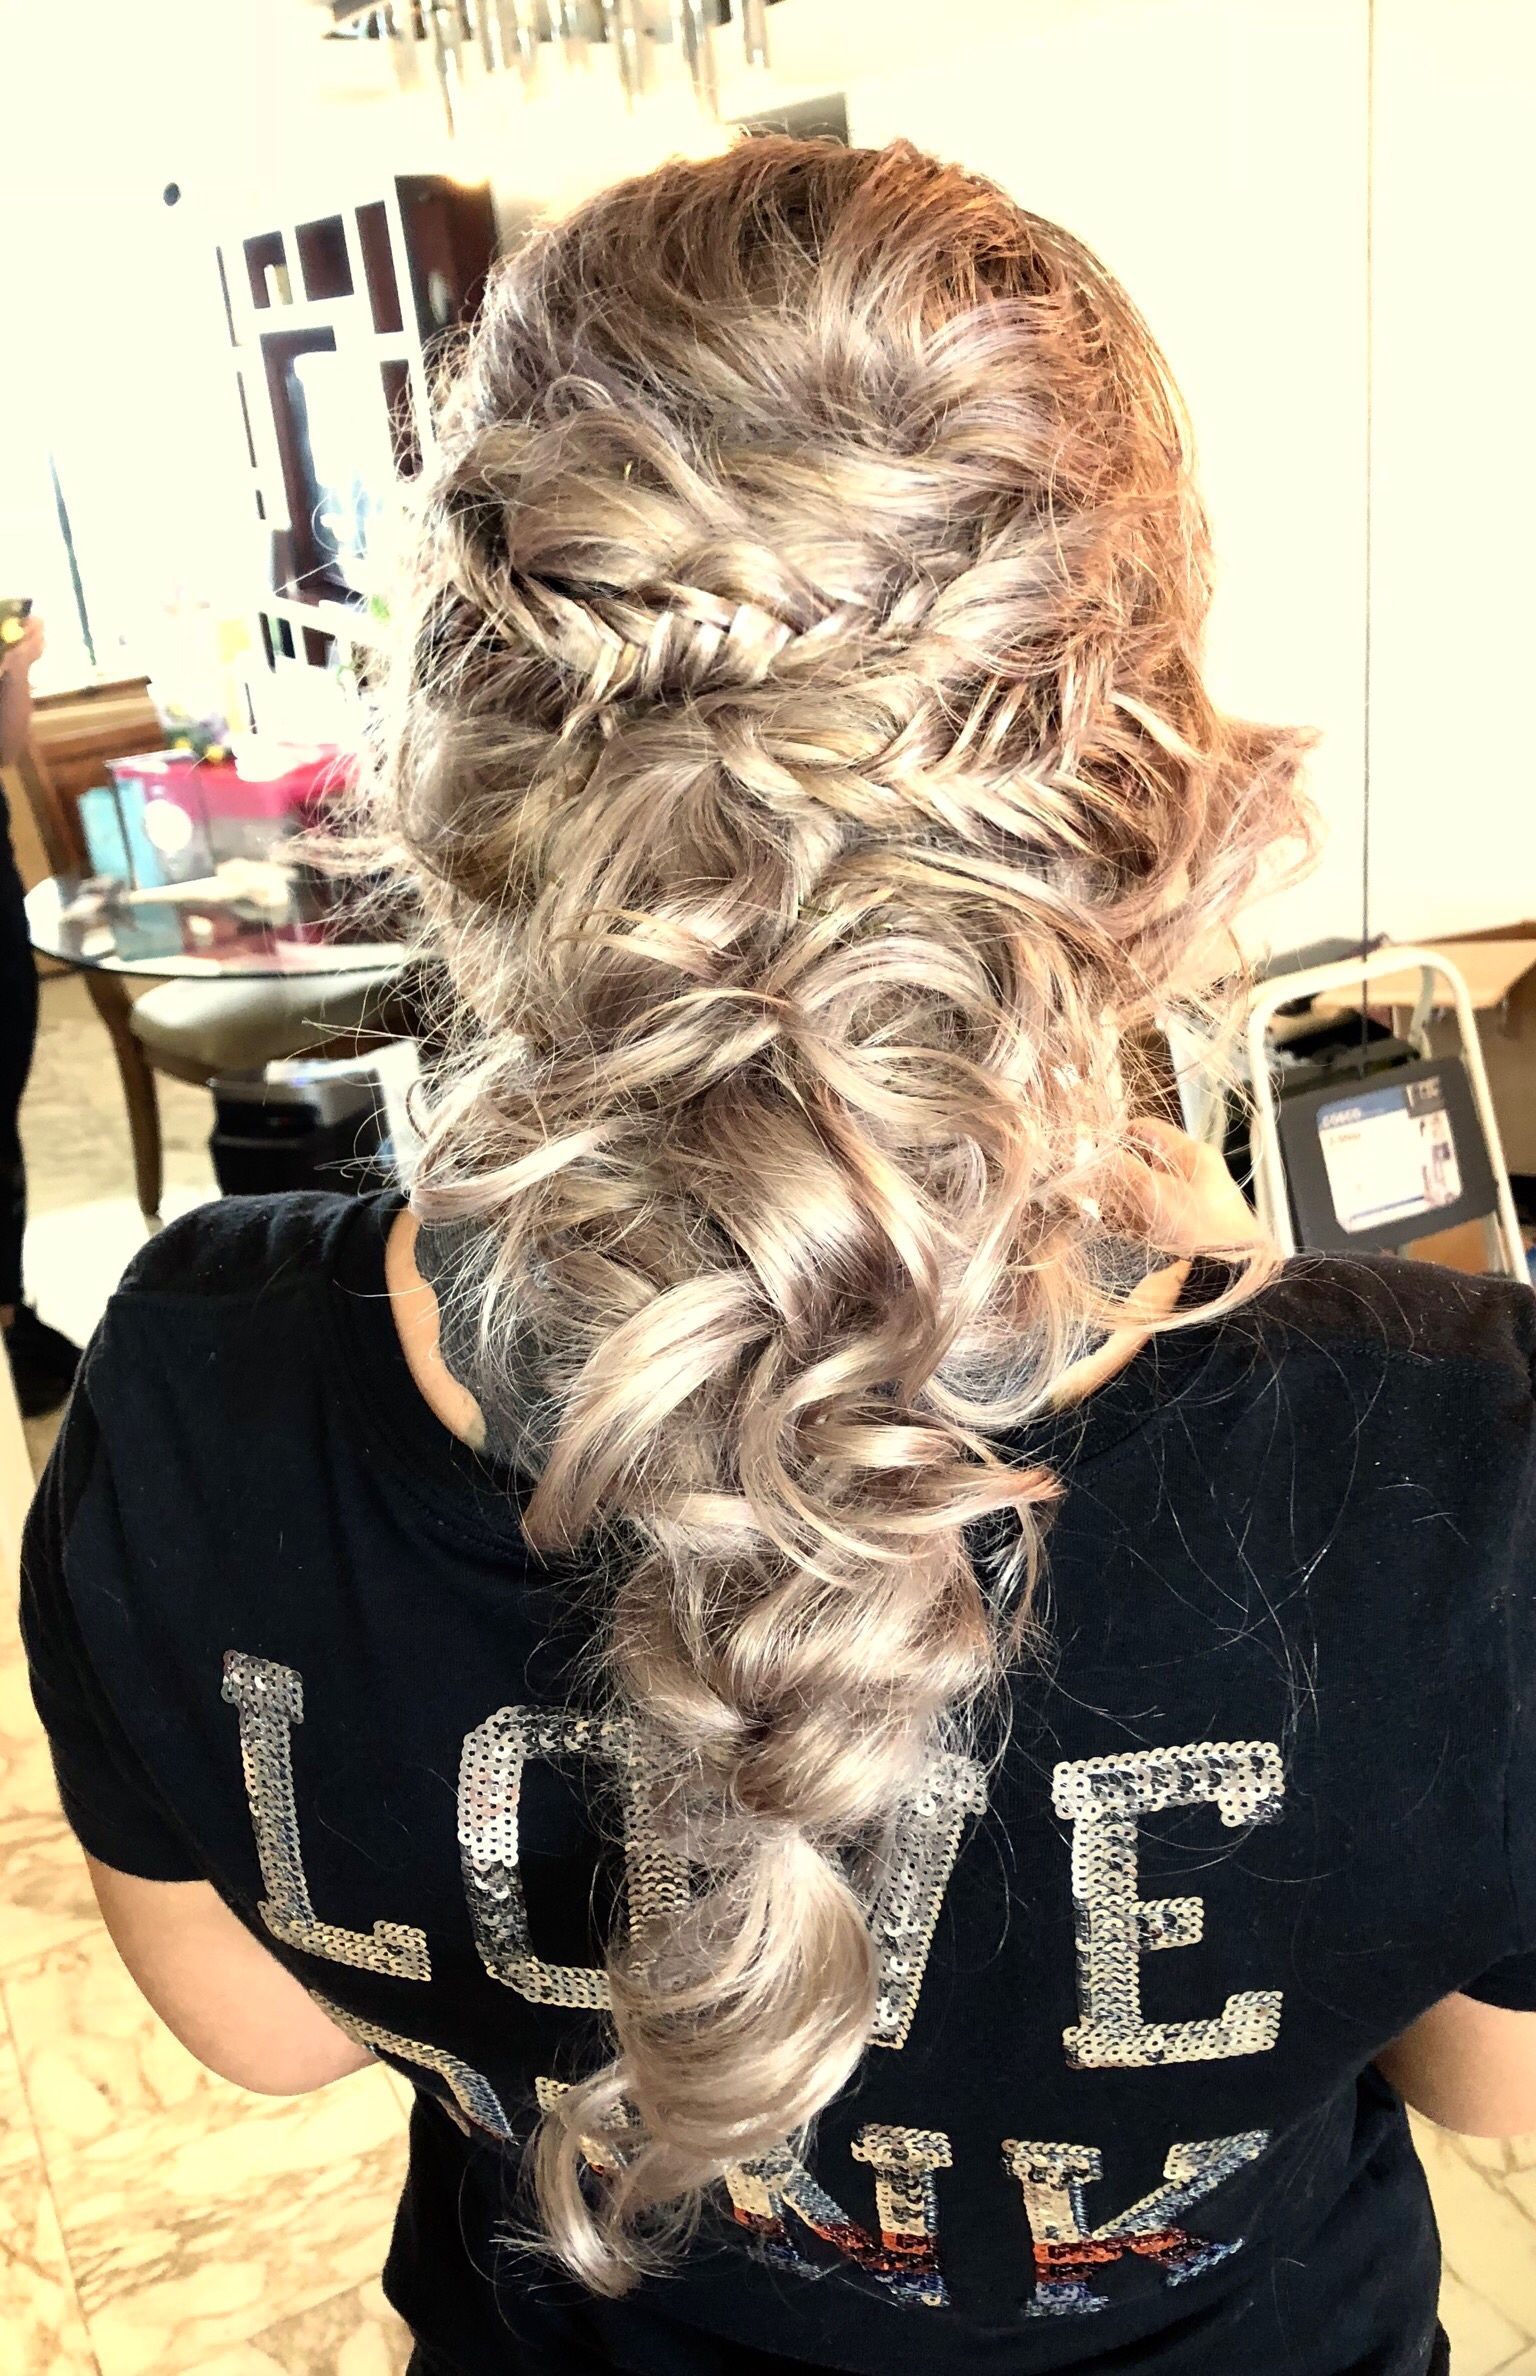 Hairstyle from my trial session with this